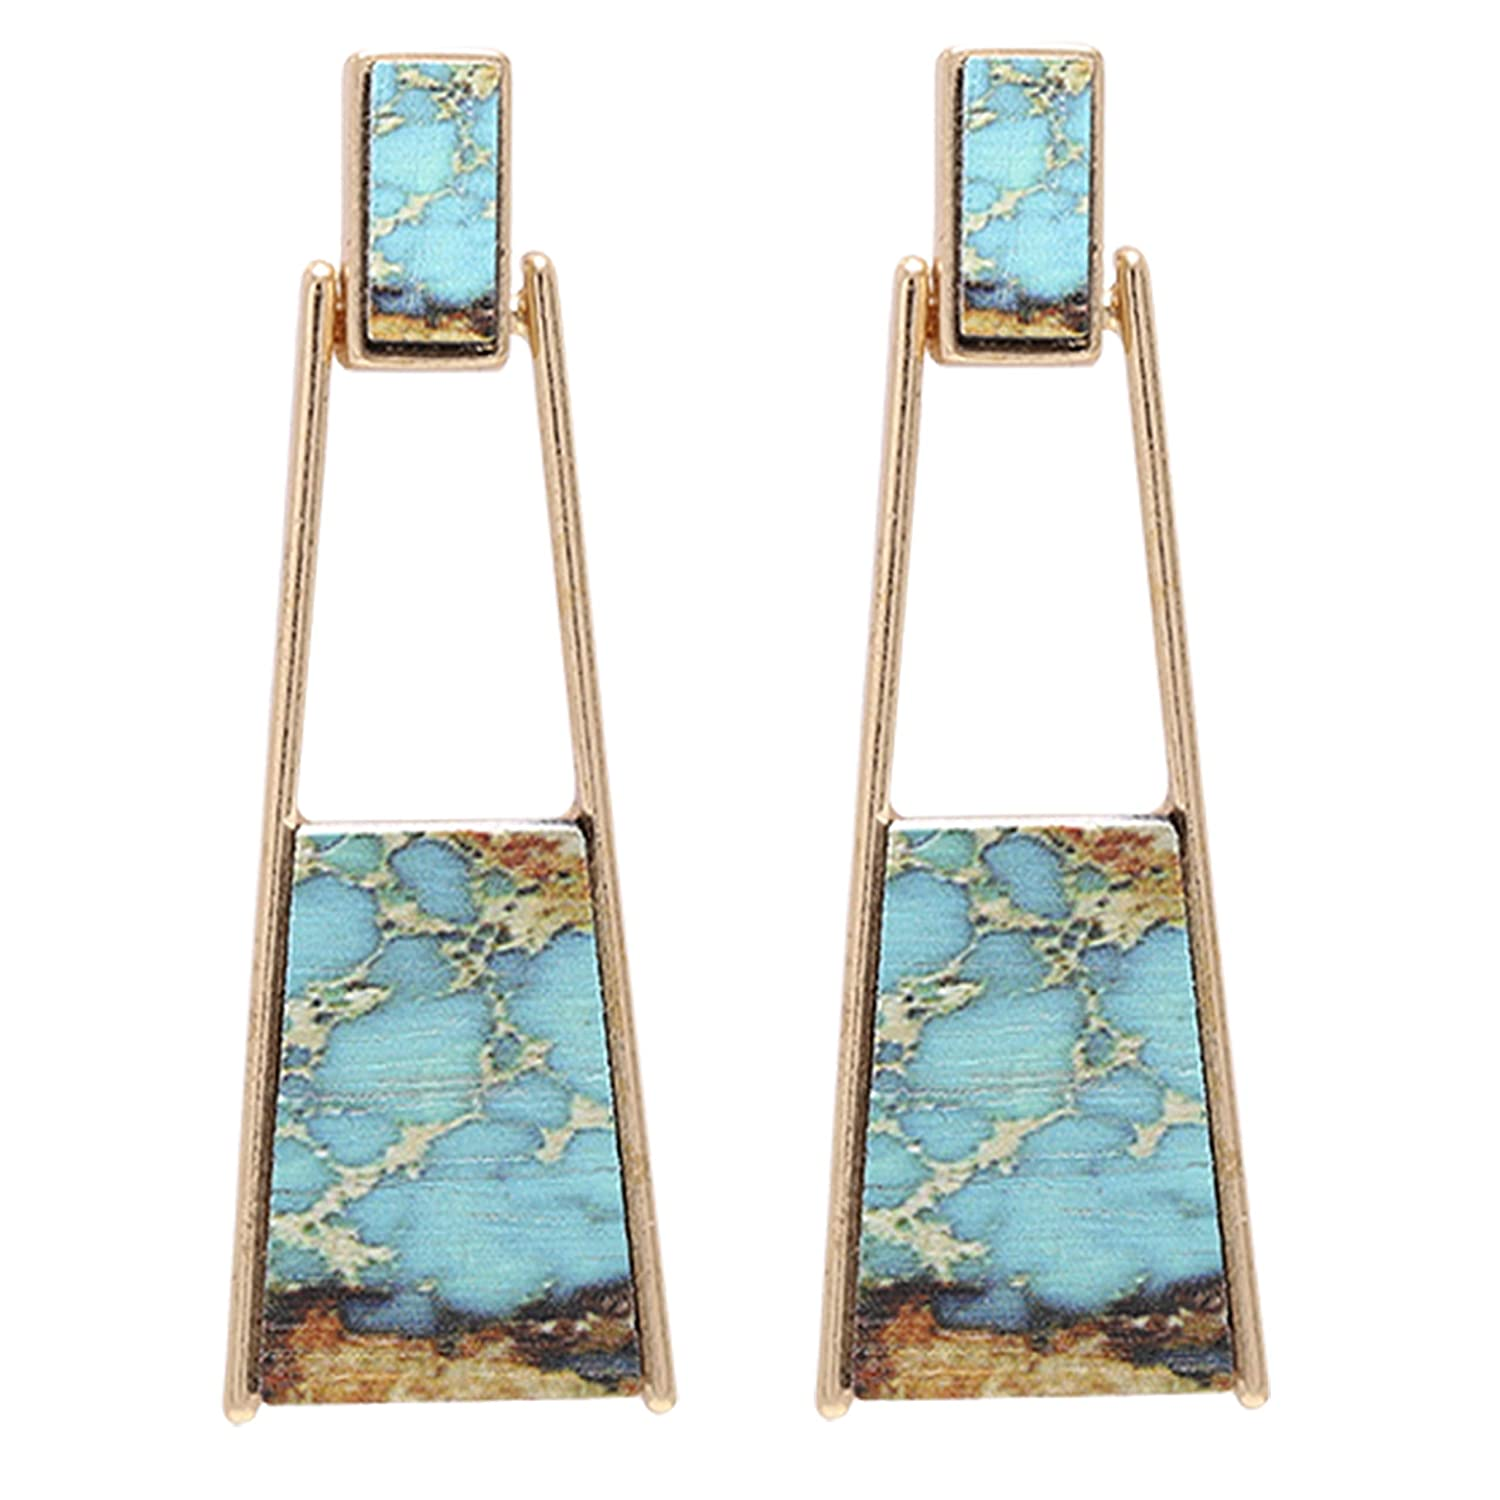 BONALUNA Bohemian Wood And Marble Effect Oblong Shaped Drop Statement Earrings BOJE-0025